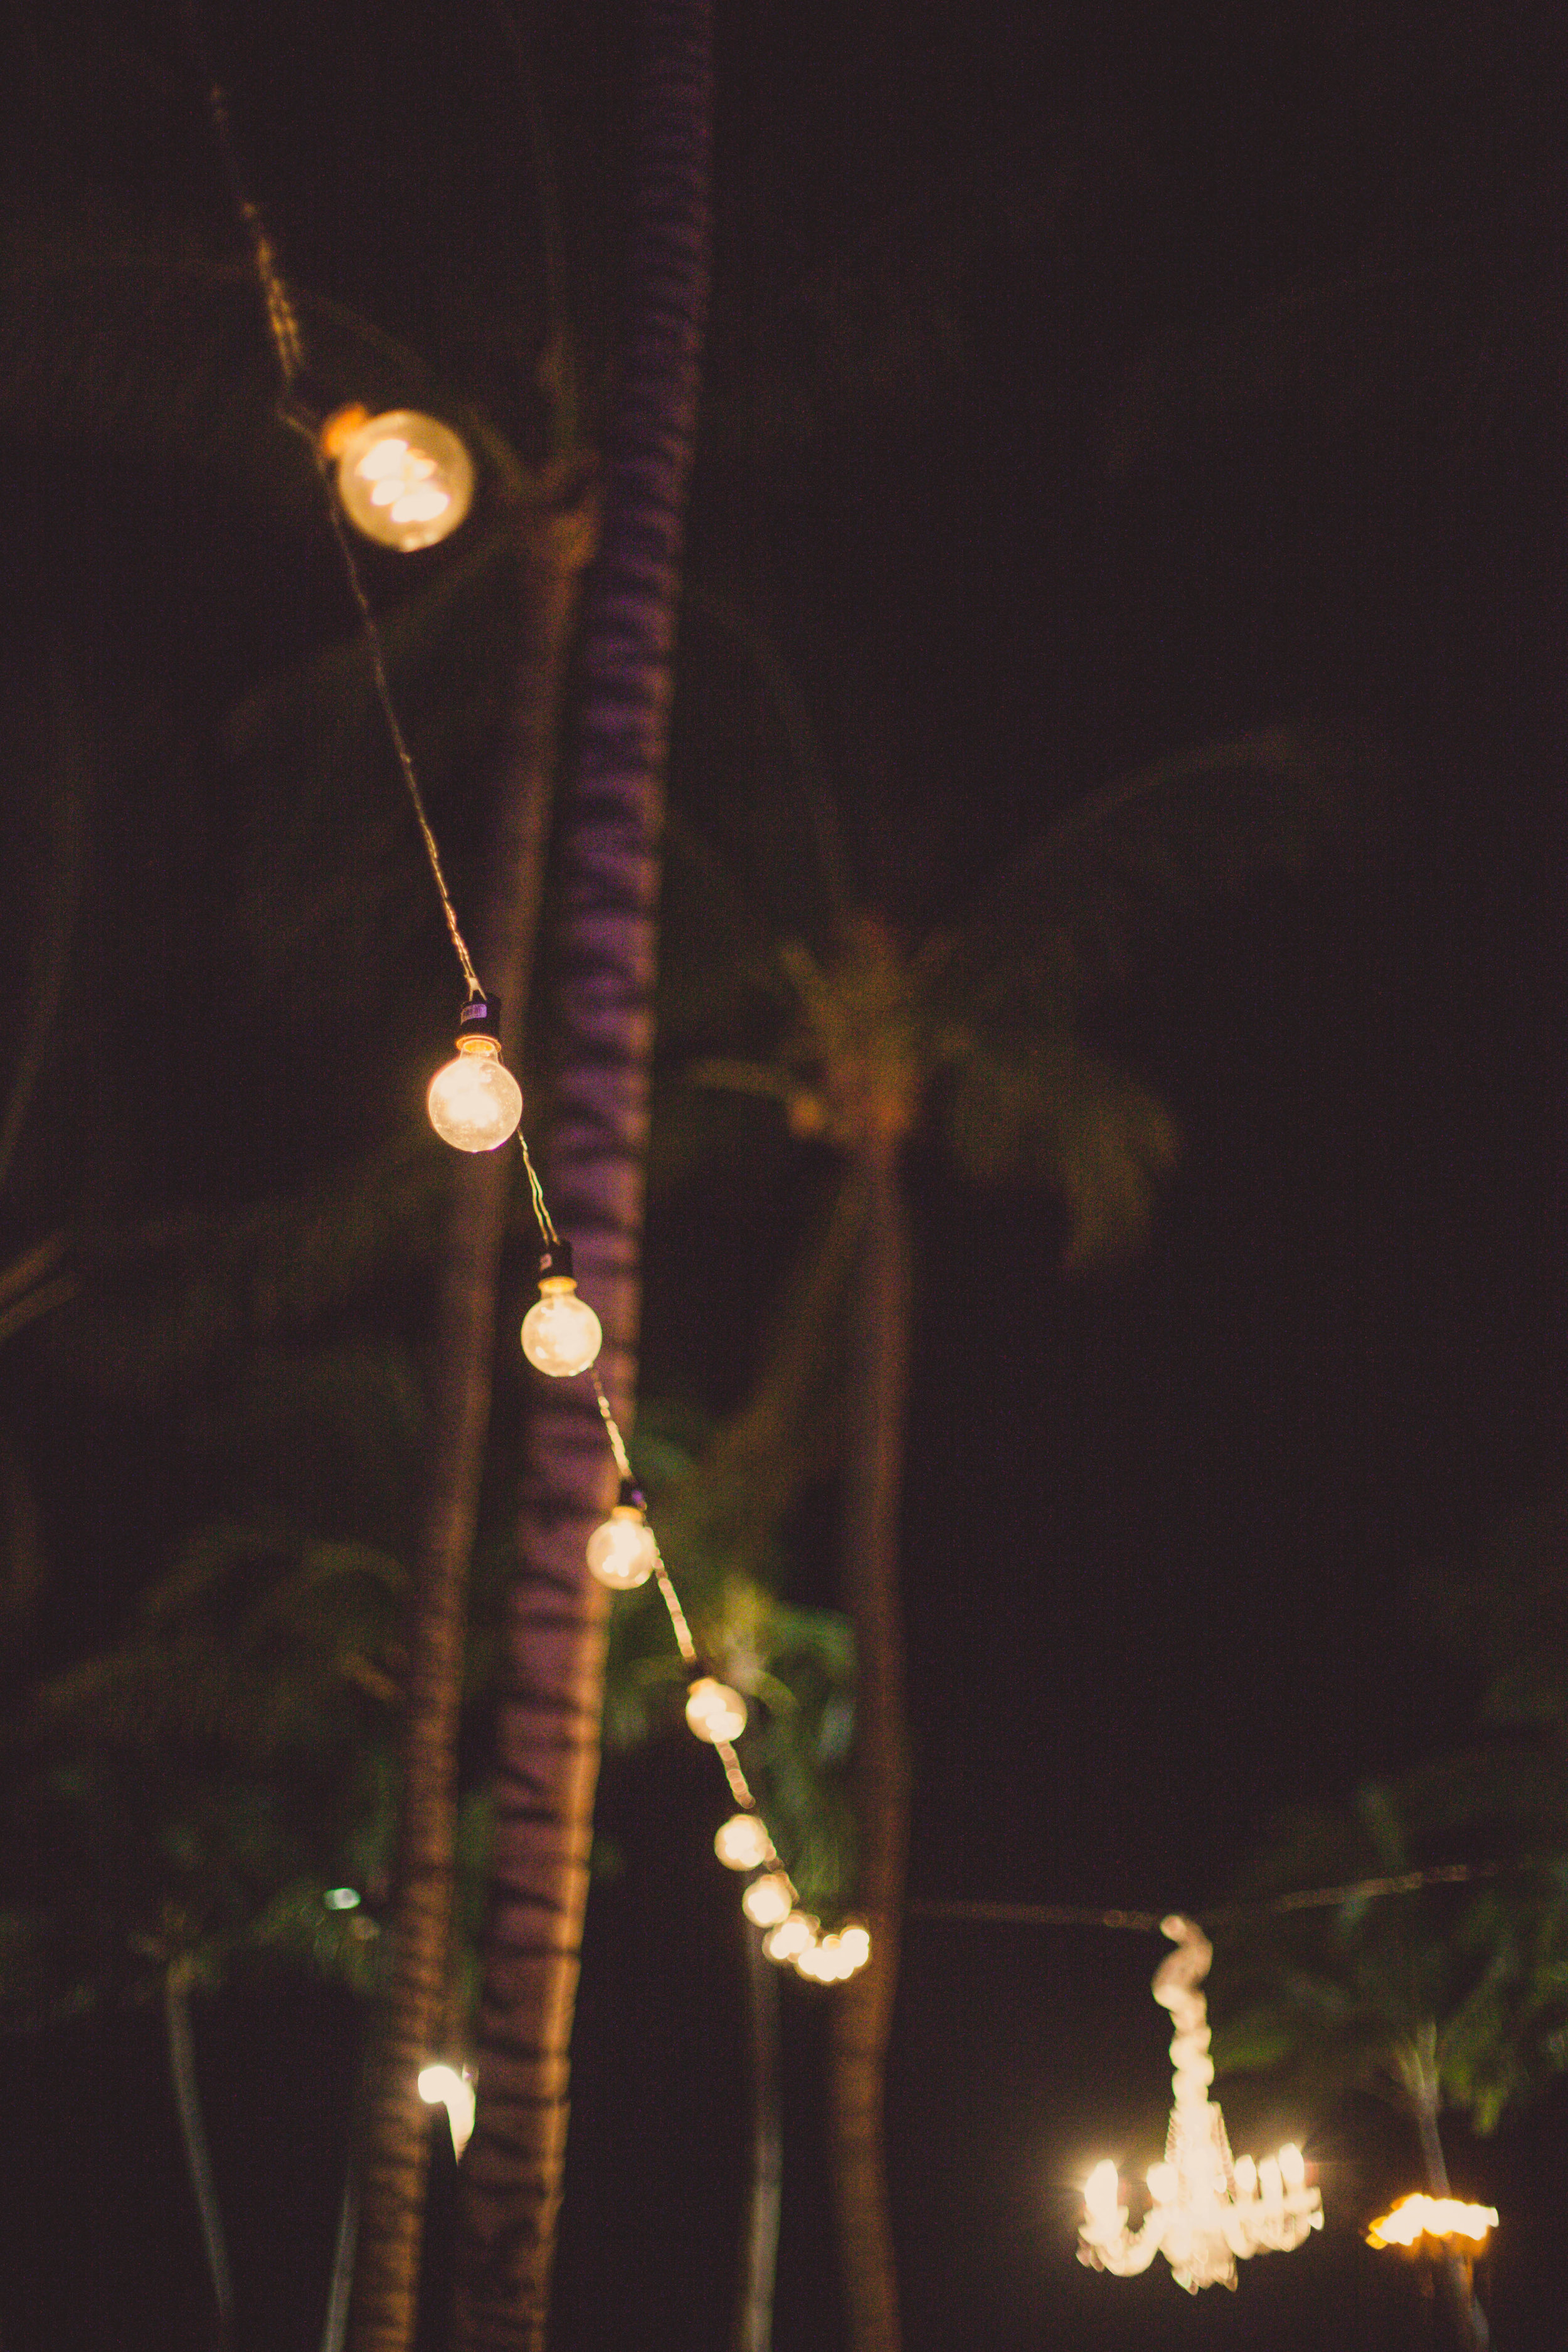 big island hawaii fairmont orchid beach wedding © kelilina photography 20170812202034-1.jpg